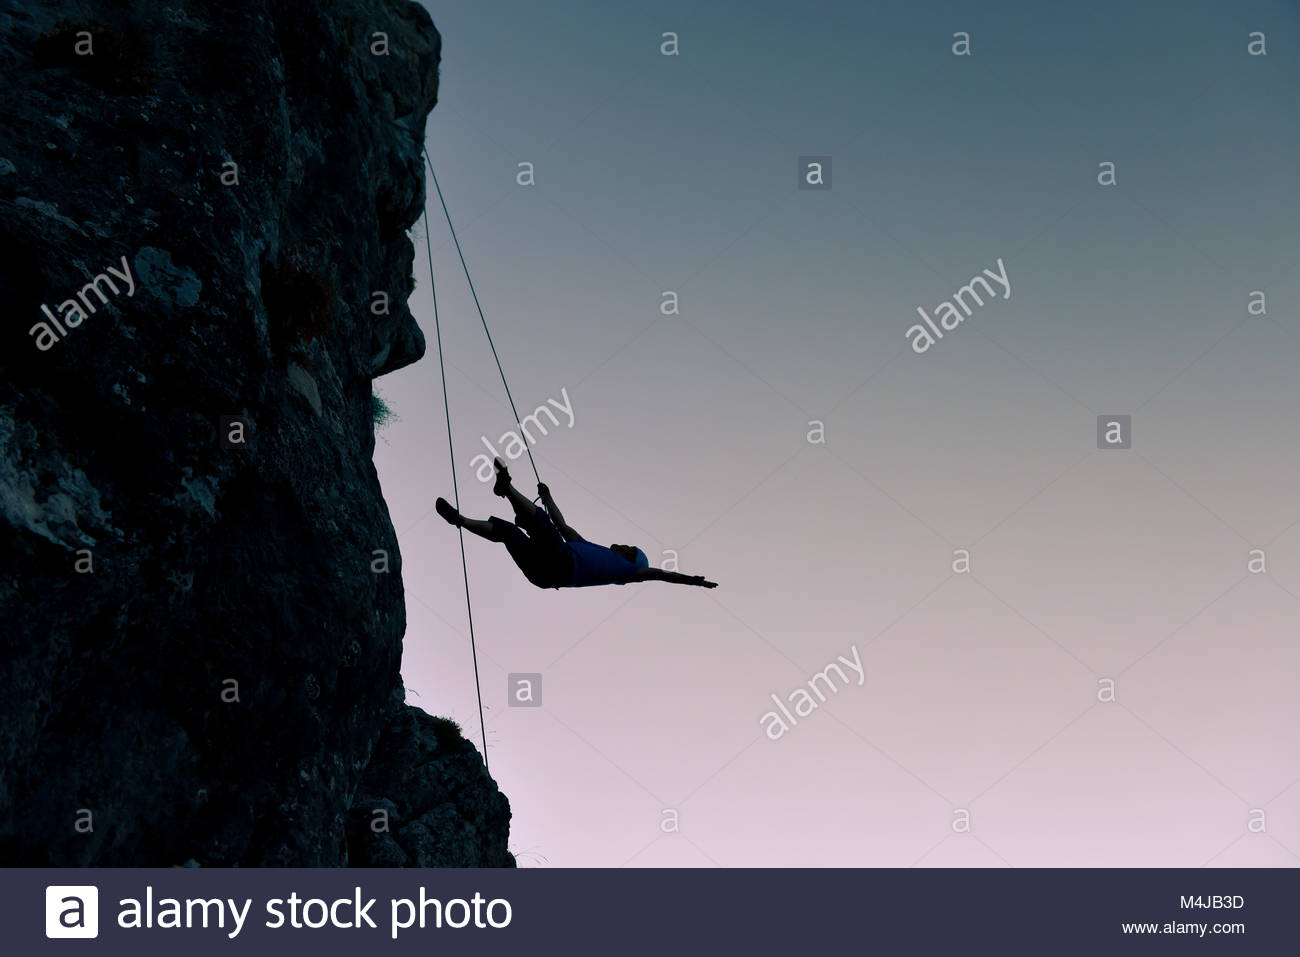 climbing mountaineering accidents - Stock Image